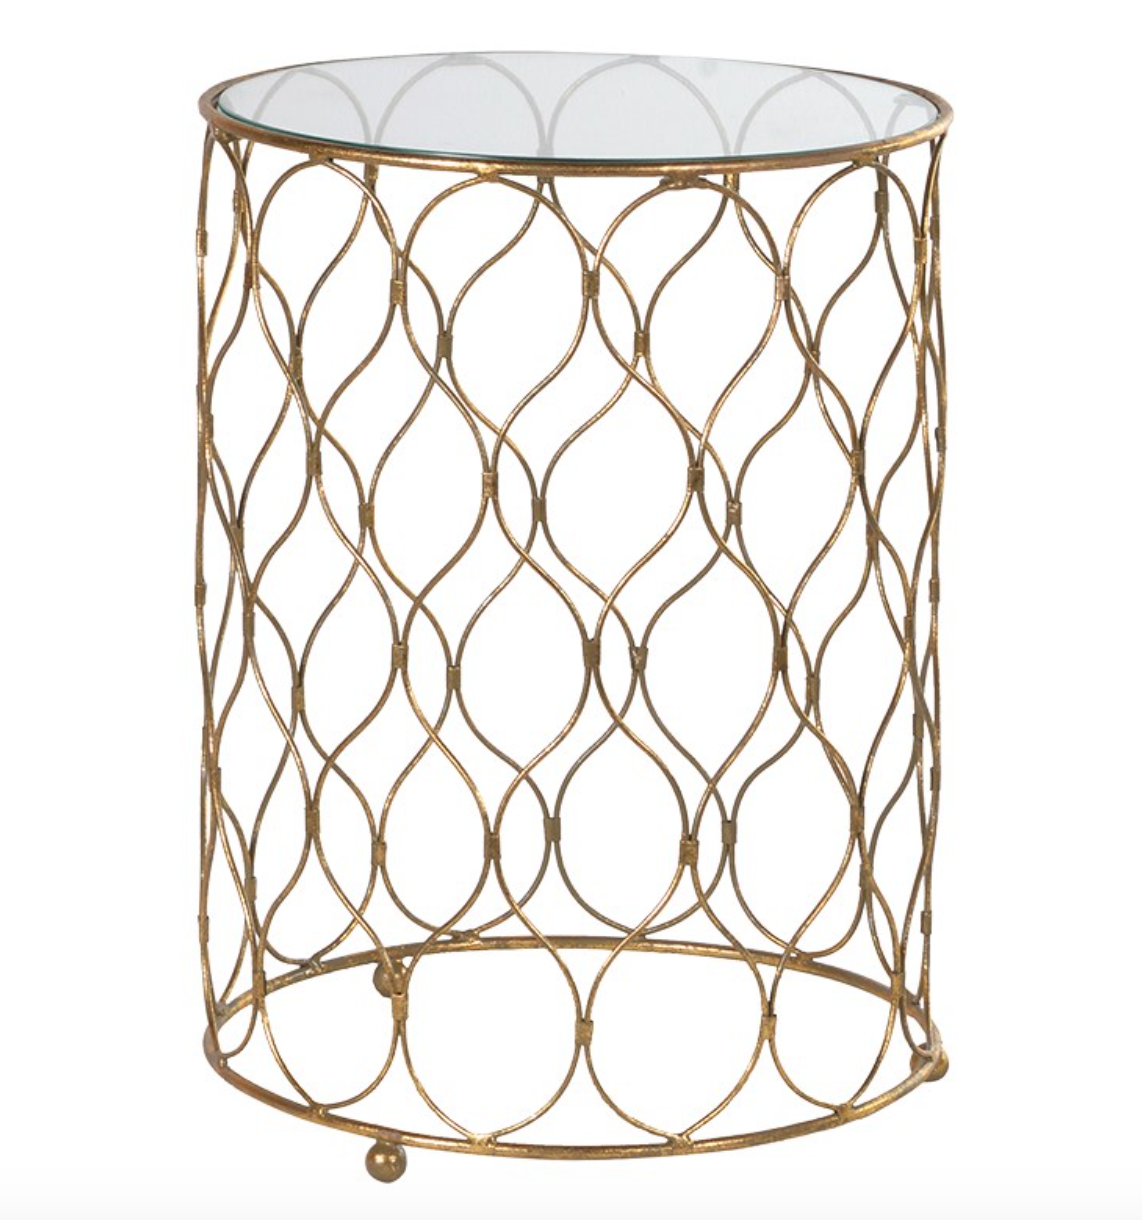 new arrivals grove home tullamore and design screen shot gold wire accent table lyon decorative style side with glass top black silver end tables threshold bar target daybed ikea